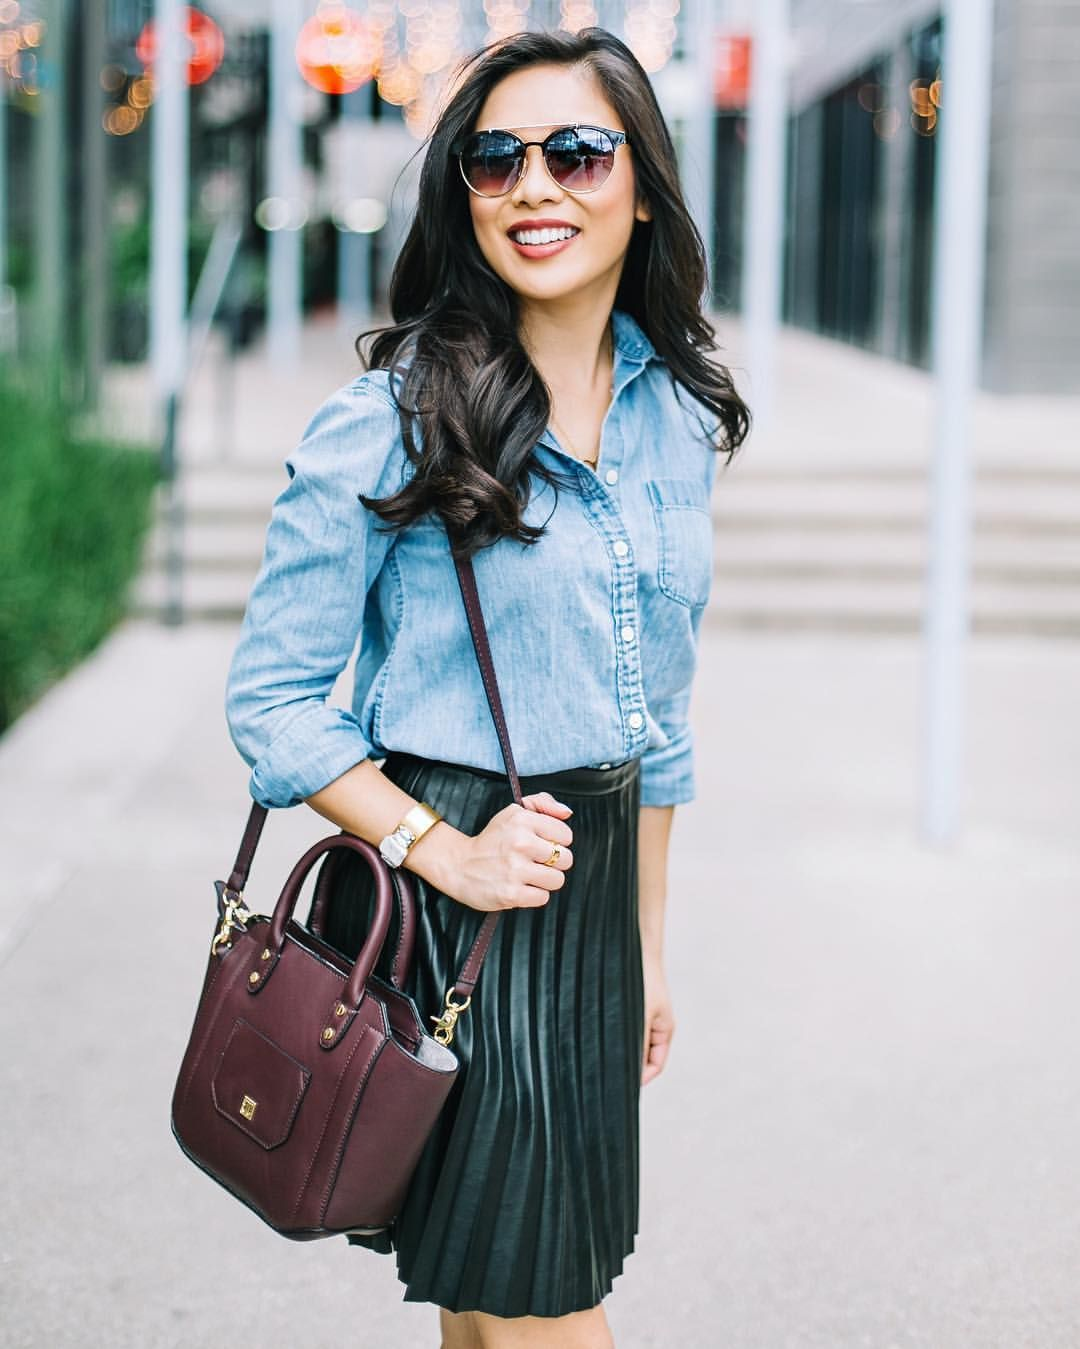 "Color & Chic • Hoang-Kim Cung on Instagram: ""Burgundy, chambray and leather make for one fool-proof fall outfit. This pleated skirt also comes in burgundy and can be styled up or down. http://liketk.it/2pliQ @liketoknow.it #liketkit"